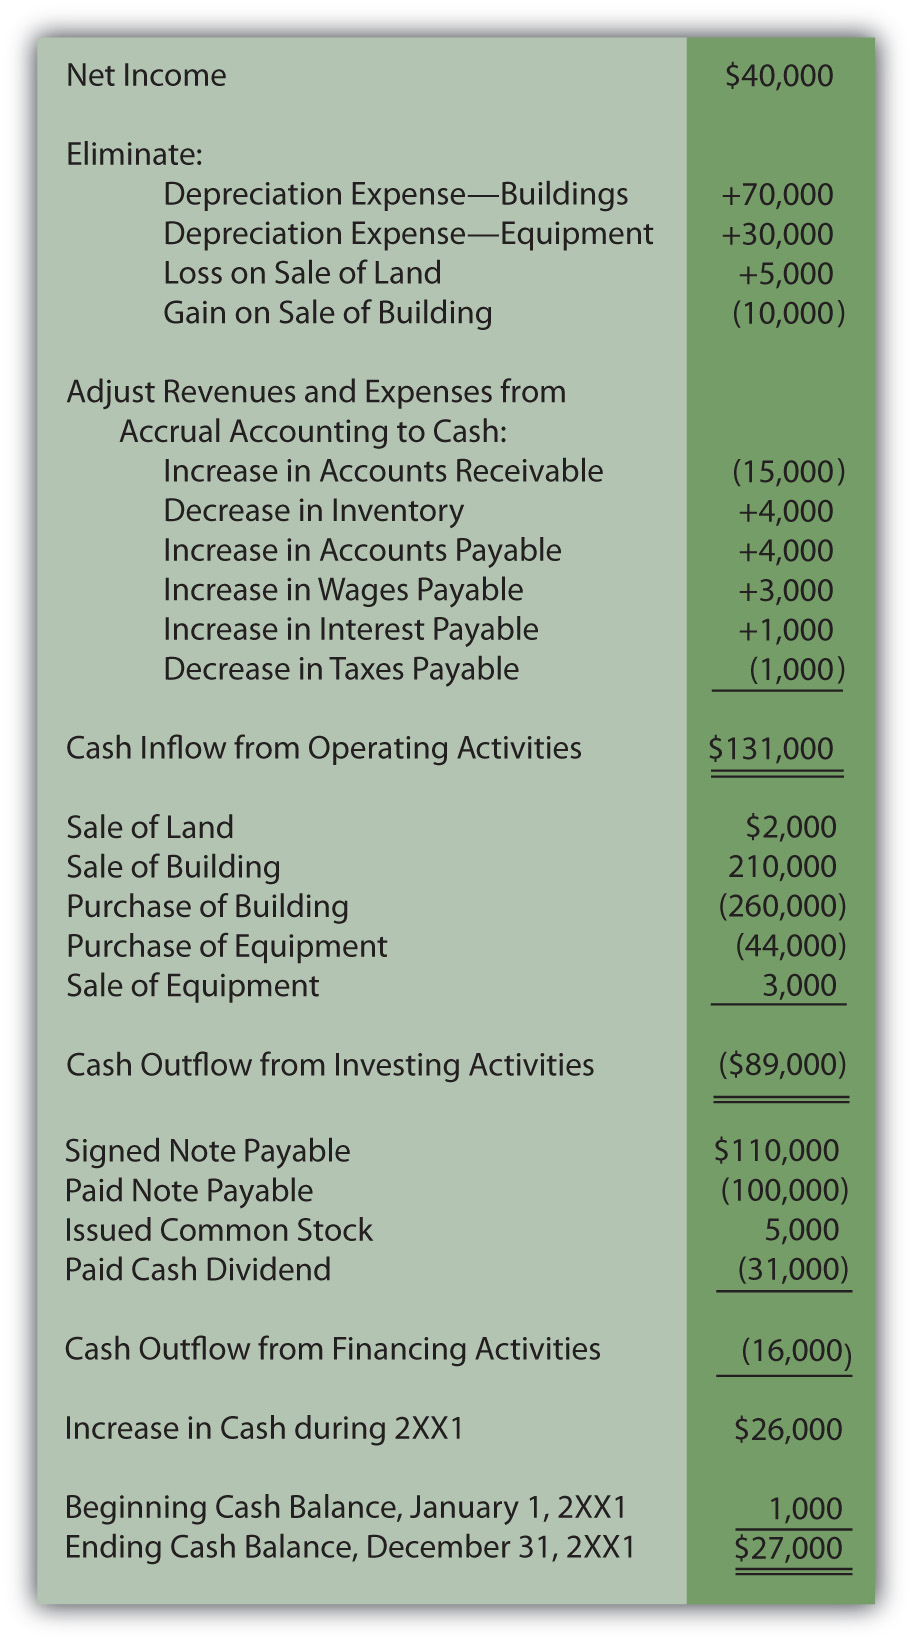 Ashe Corporation statement of cash flows year ended December 31, 2XX1